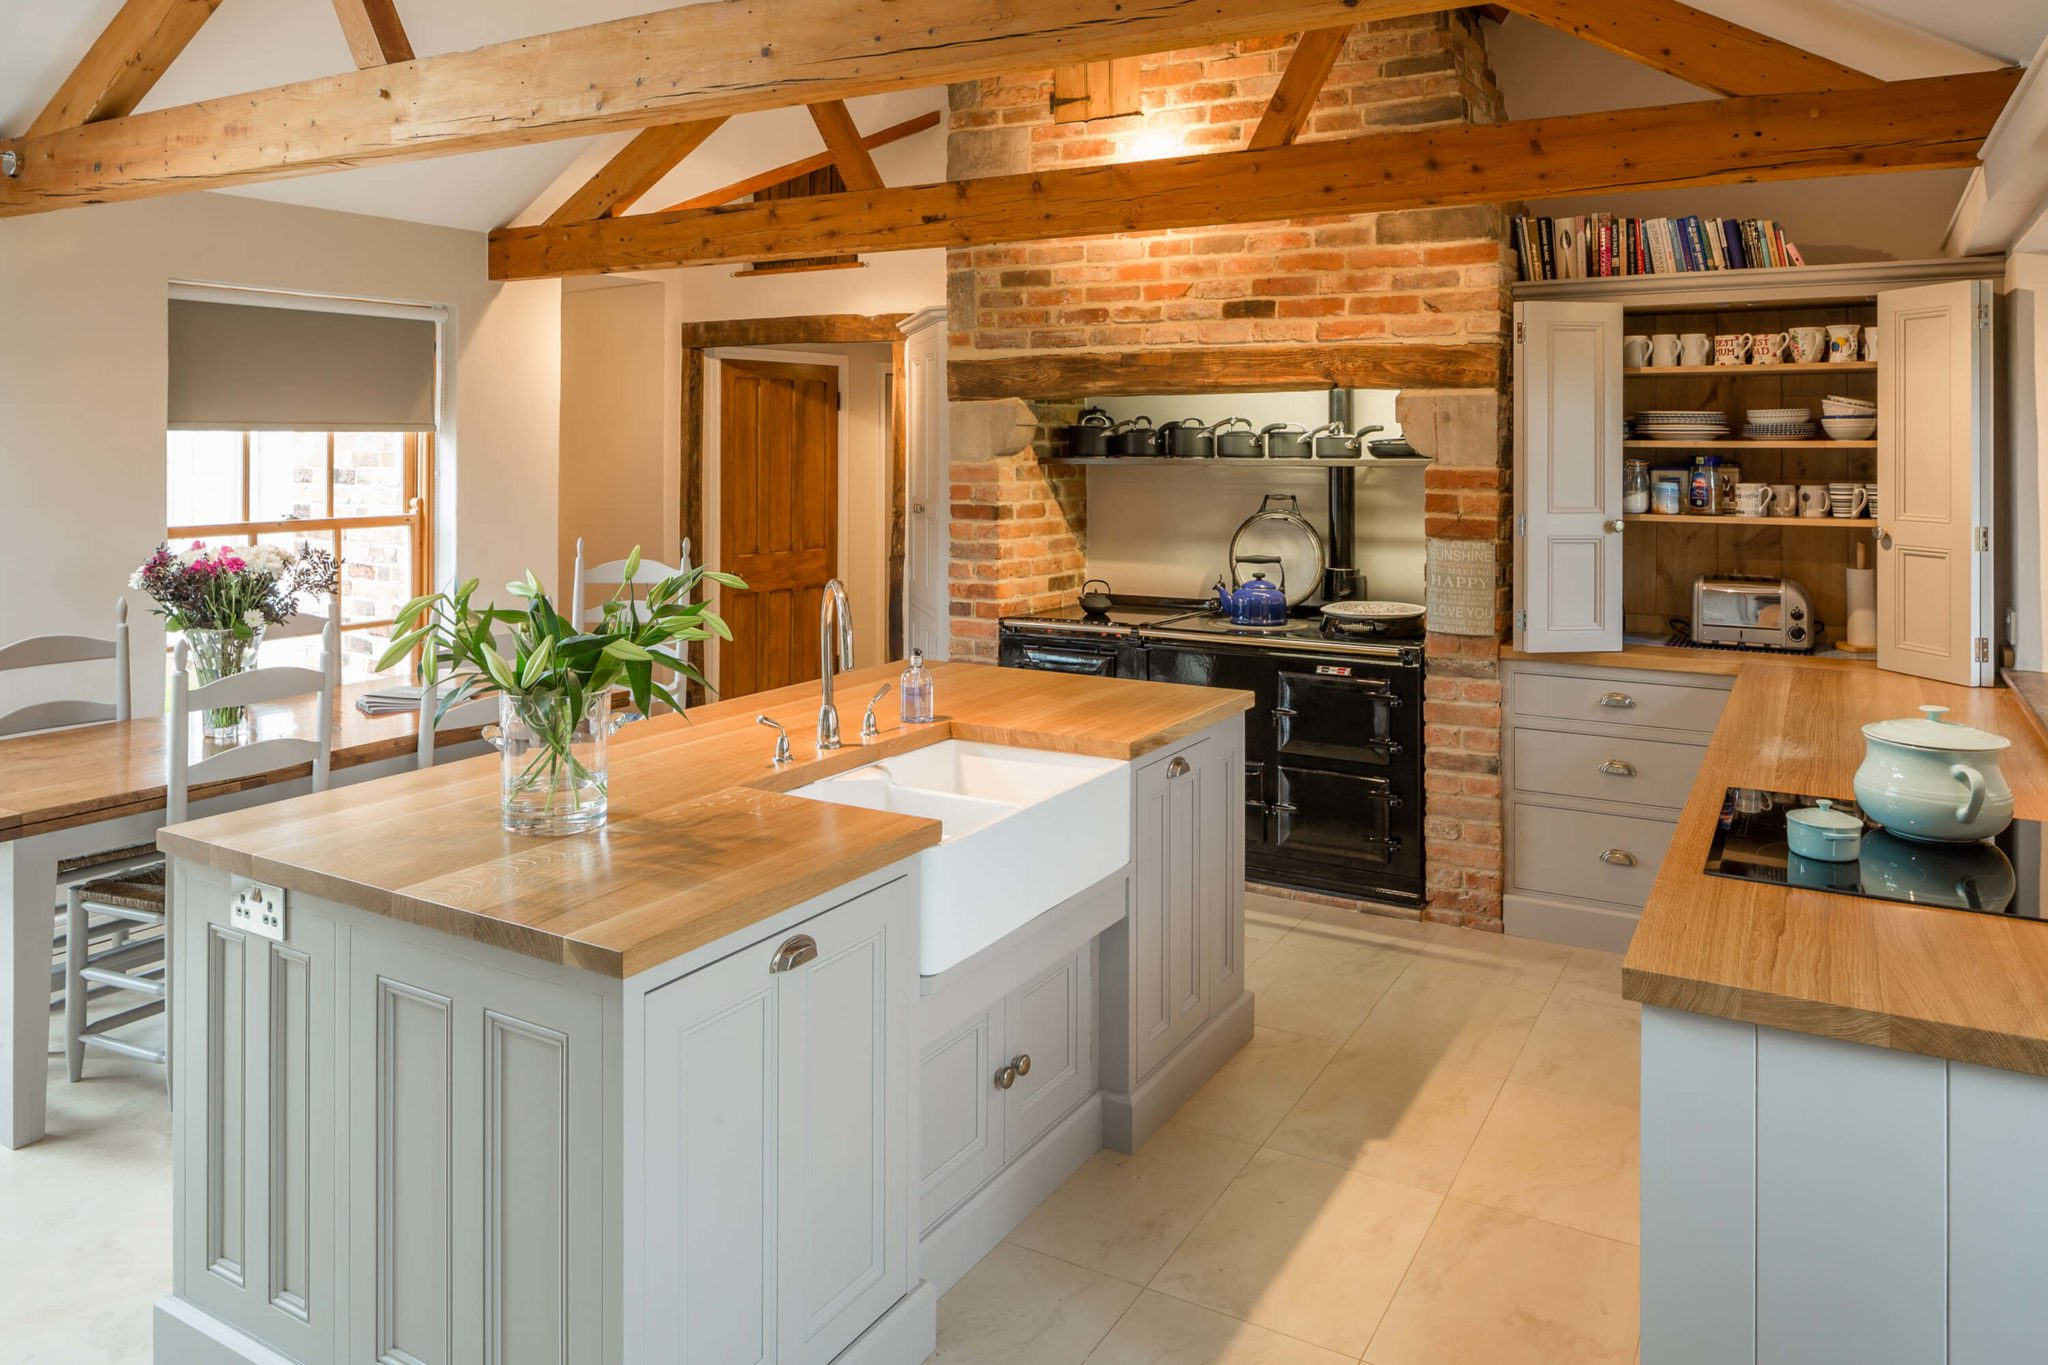 Bespoke Kitchen Island 2 - Hill Farm Furniture